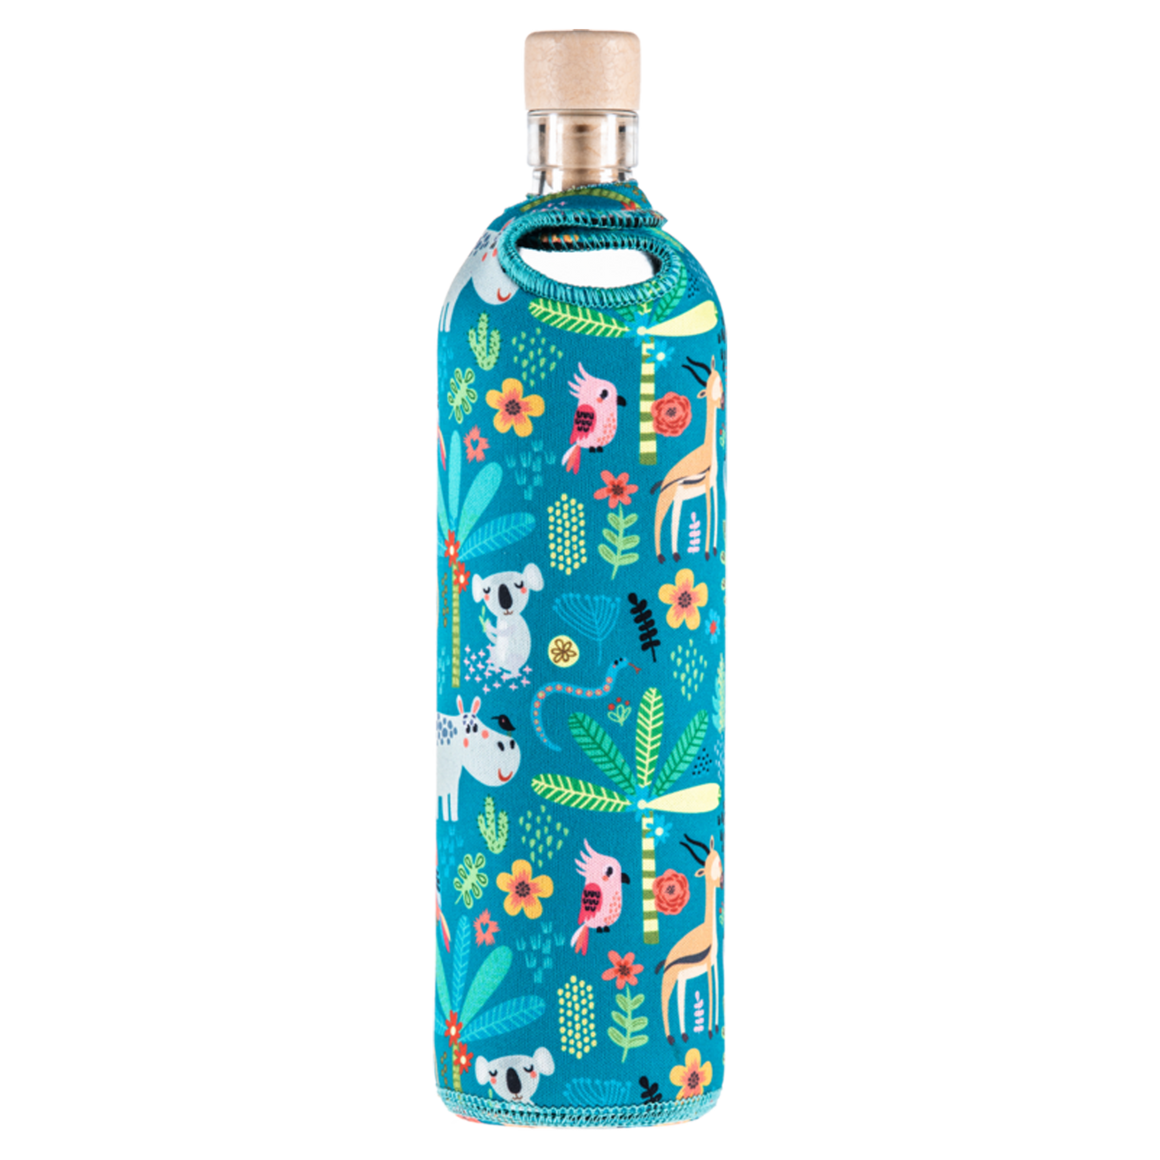 Flaska Neo Design - Animal Kingdom (300/500 ml) - Aldha